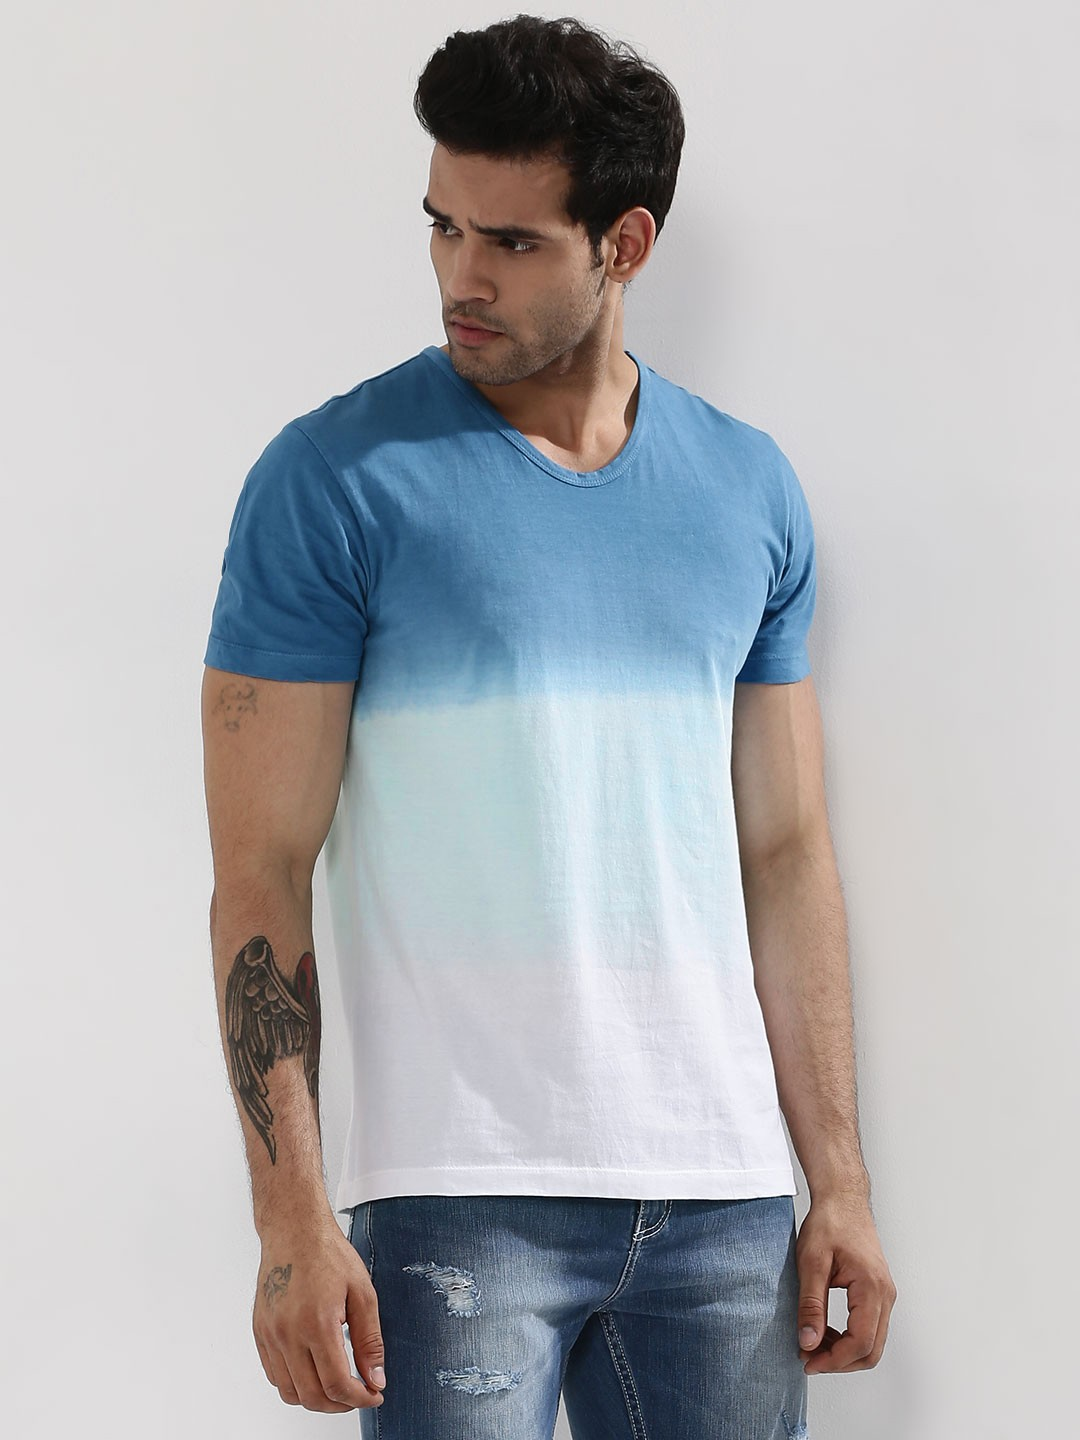 Shop shopnow-ahoqsxpv.ga with free shipping. Discover the latest collection of Men's T-shirts & Polos. Made in Italy.